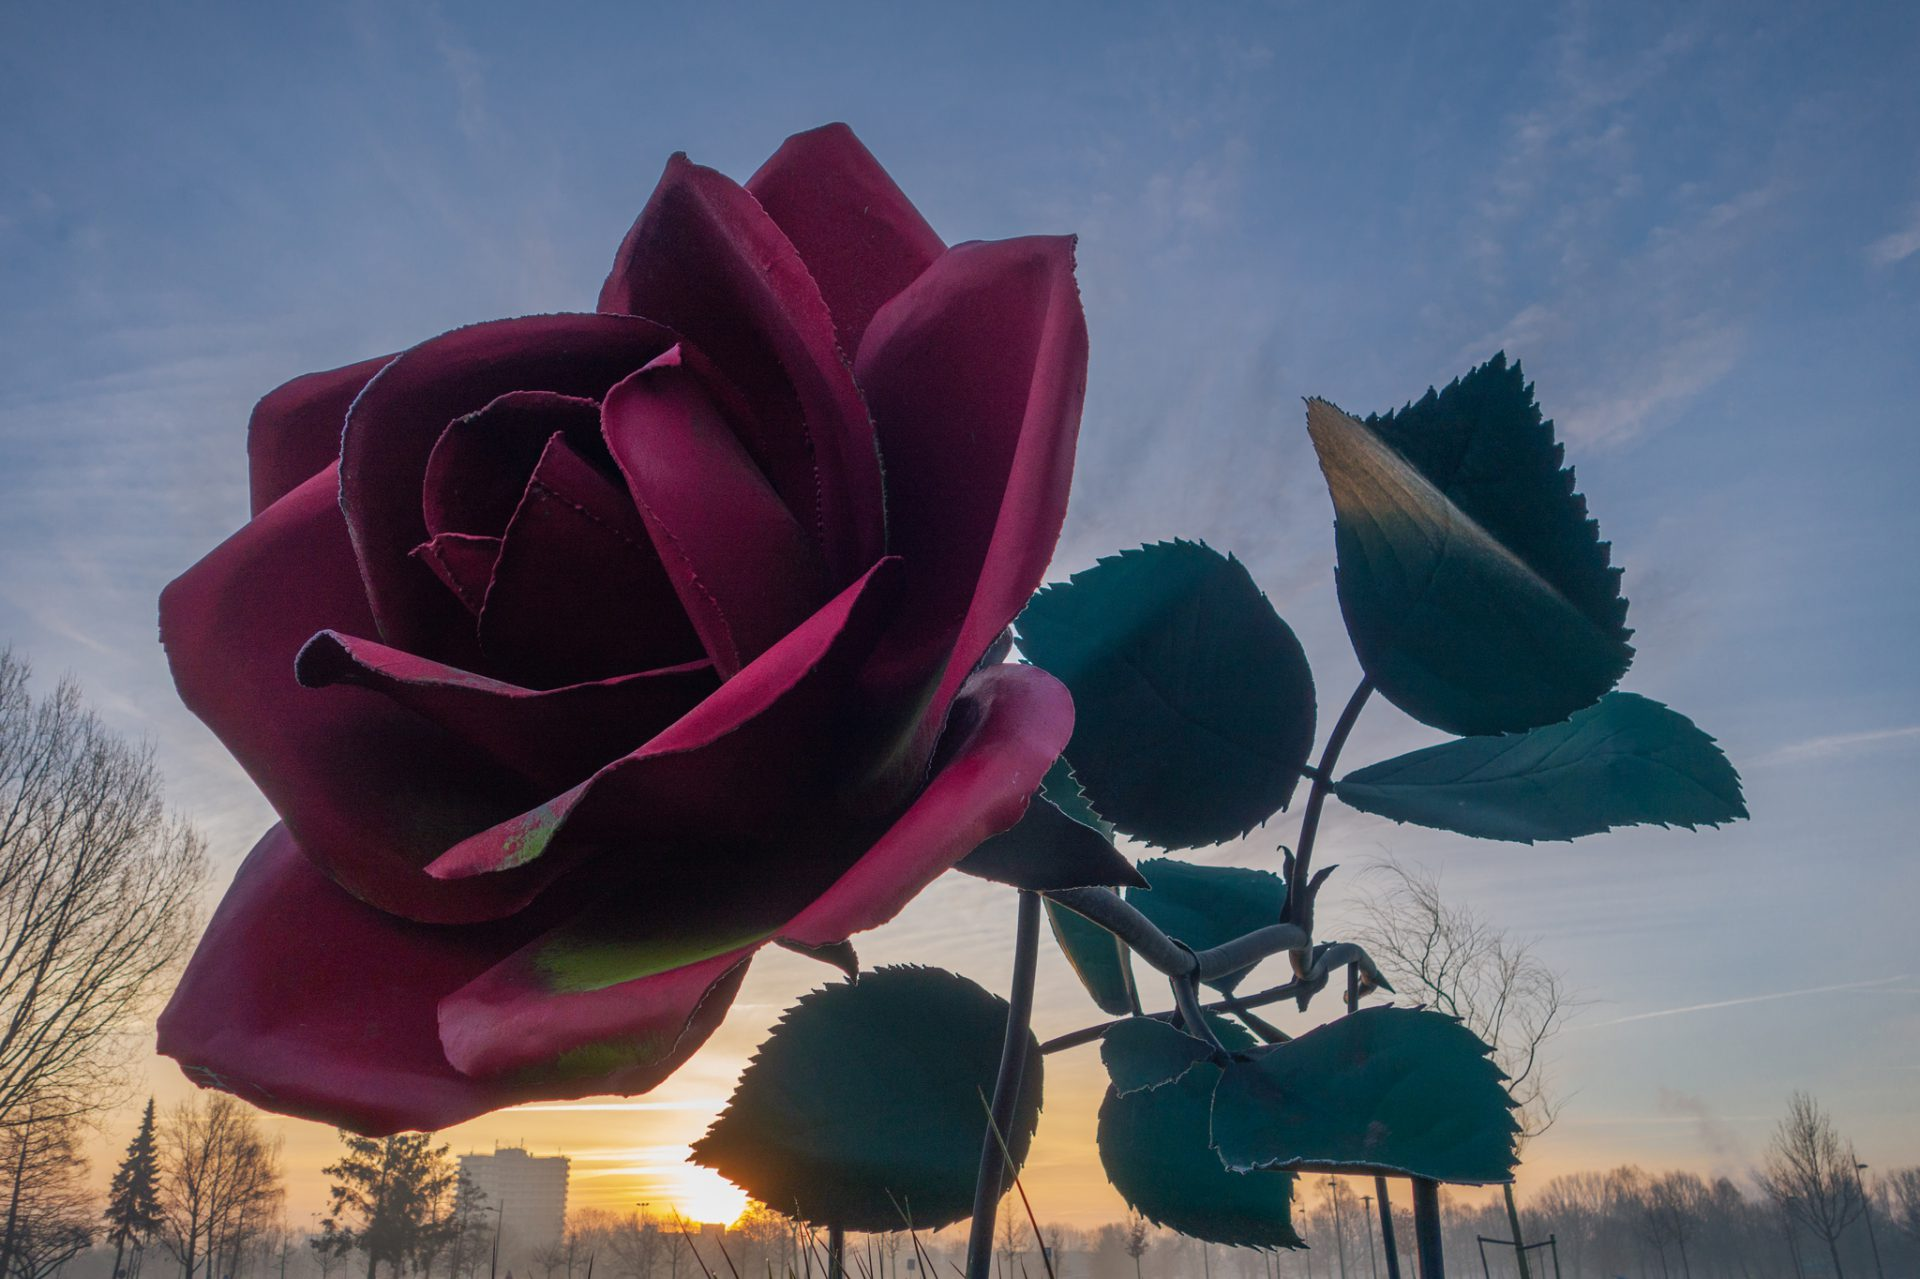 A Rose of Steel was taken by António Valente